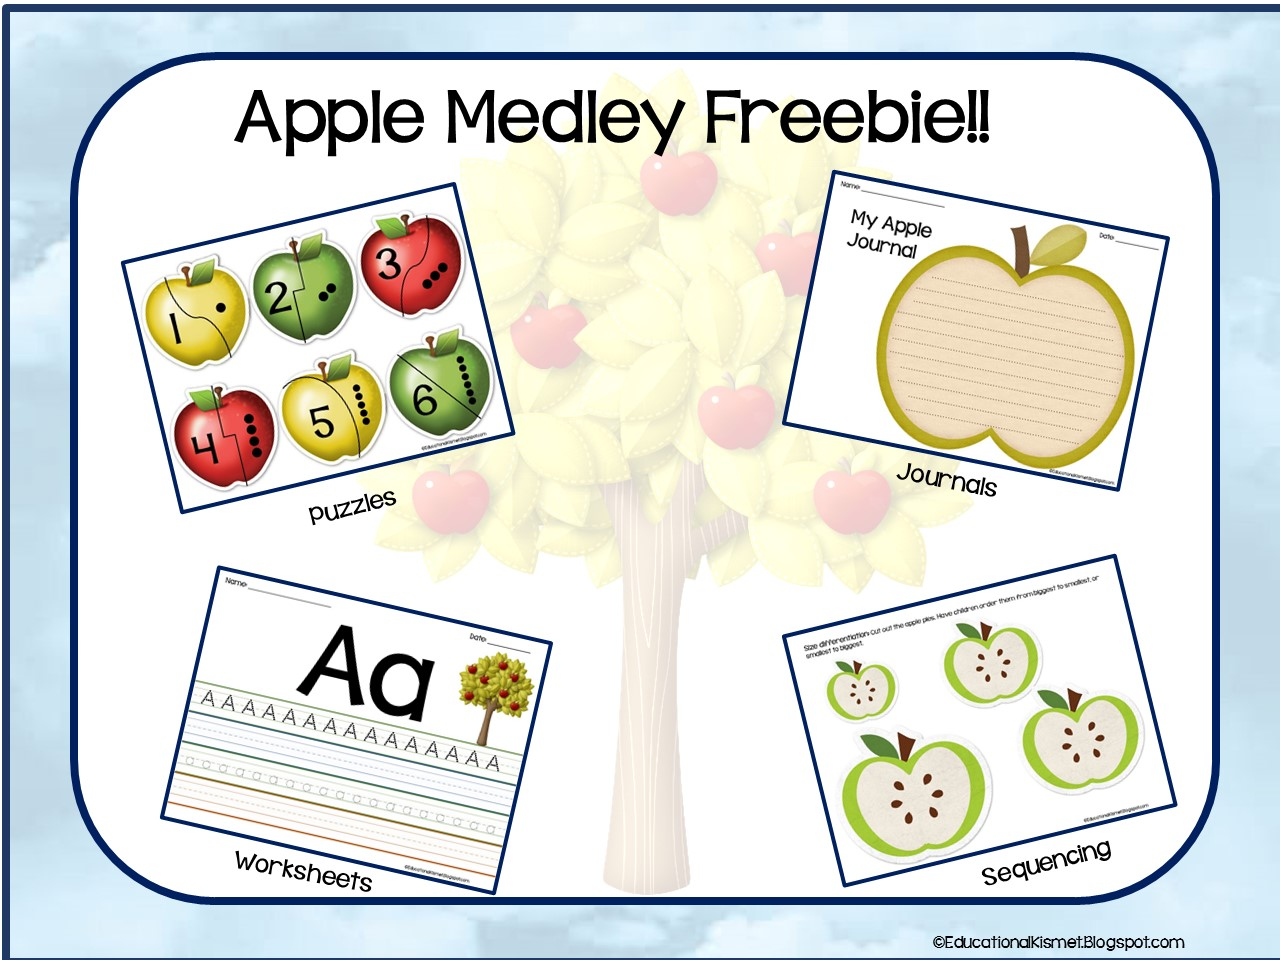 Educational Kismet Apple Medley Worksheets Puzzles And So Much More